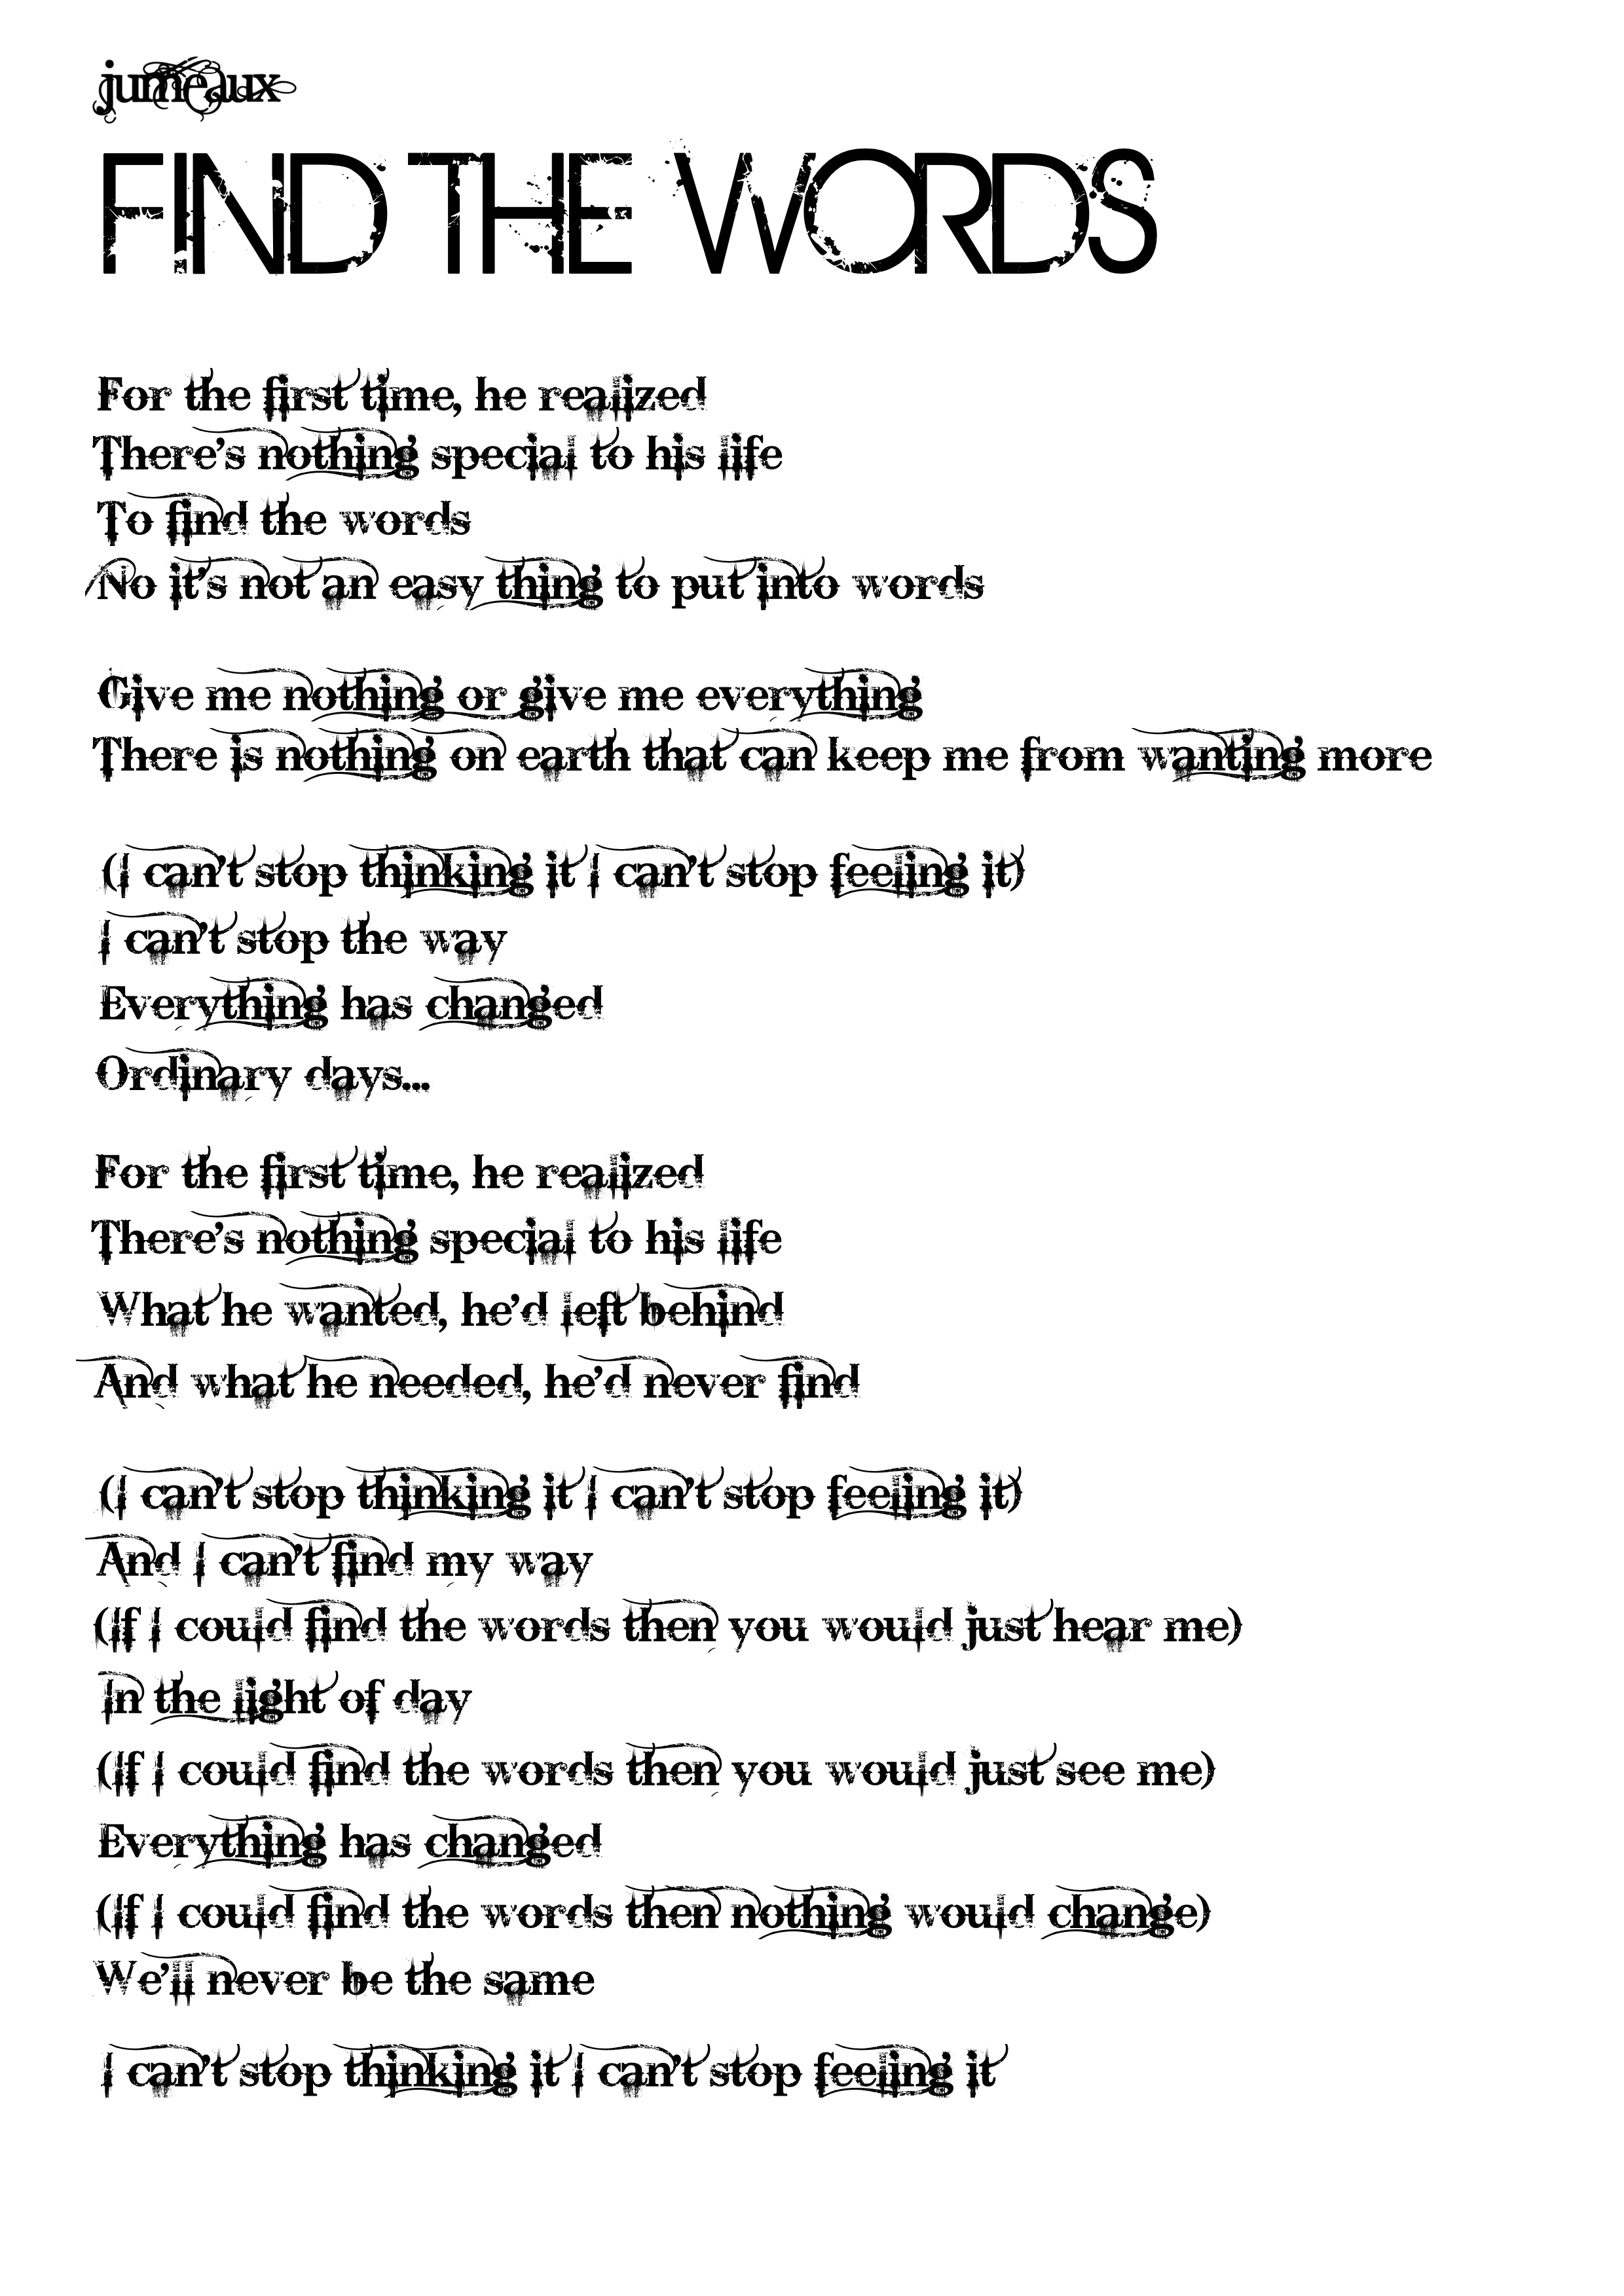 Lyrics to the song